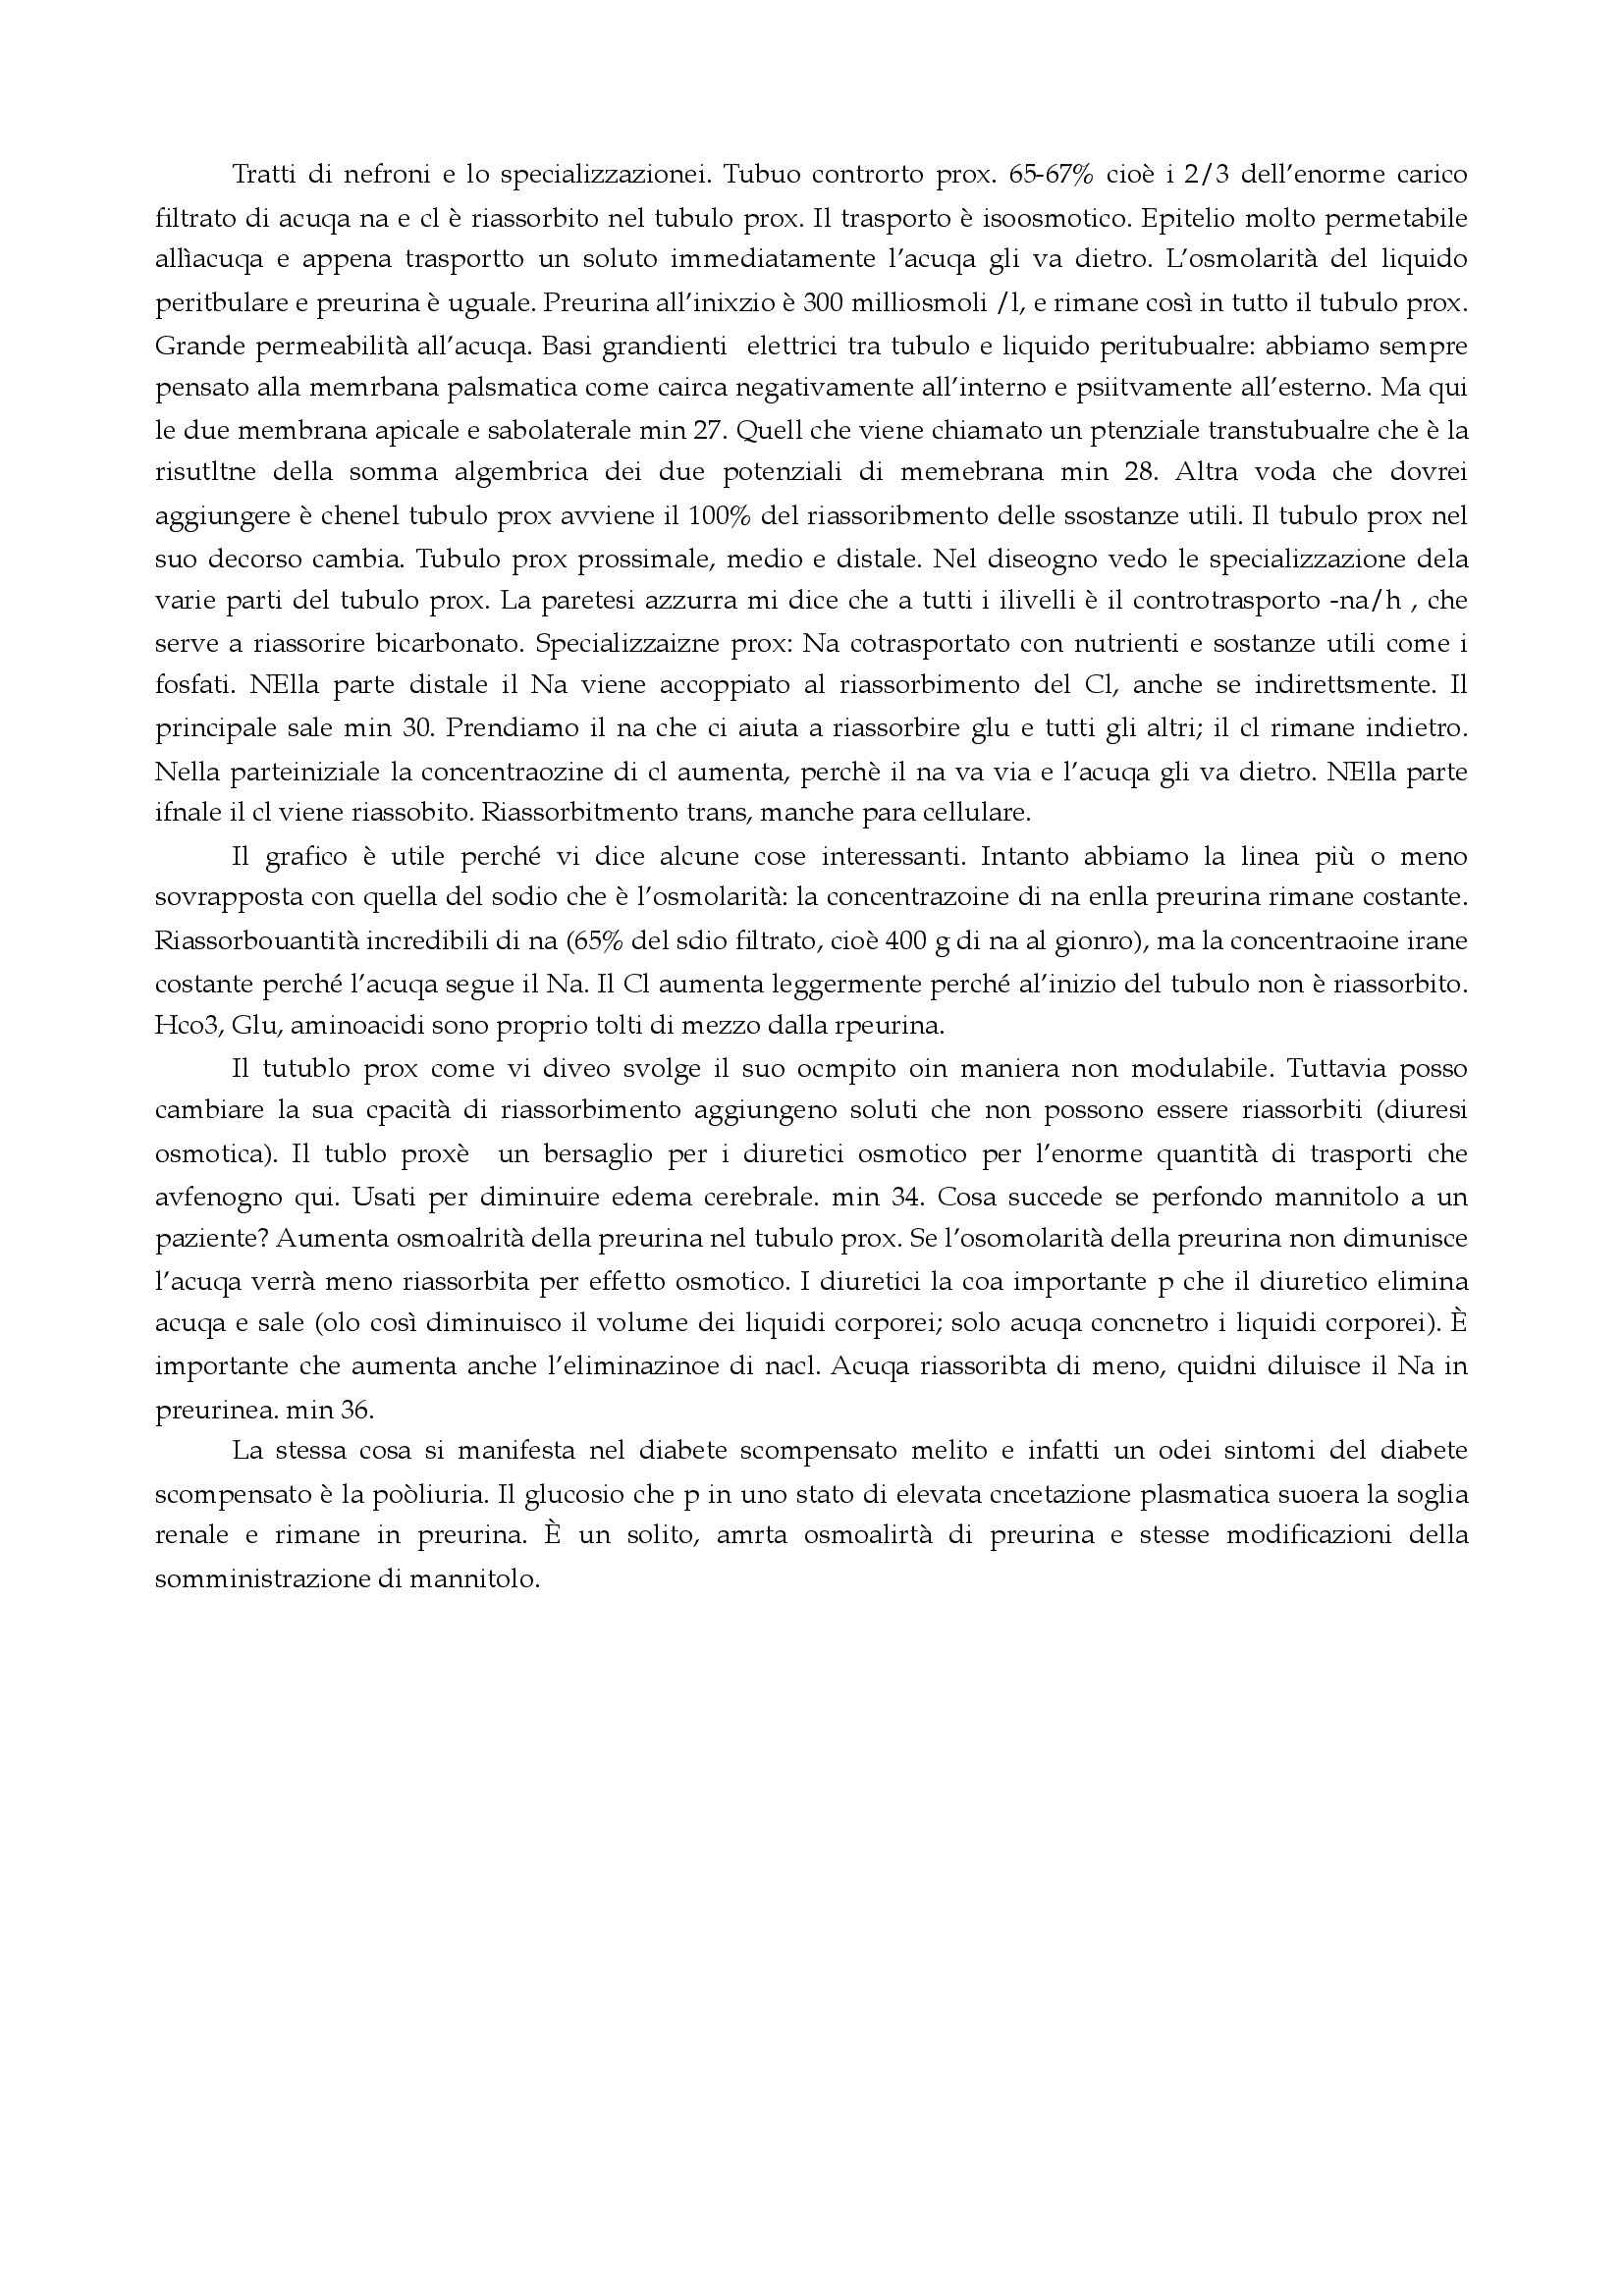 Fisiologia - fisiologia renale Pag. 61